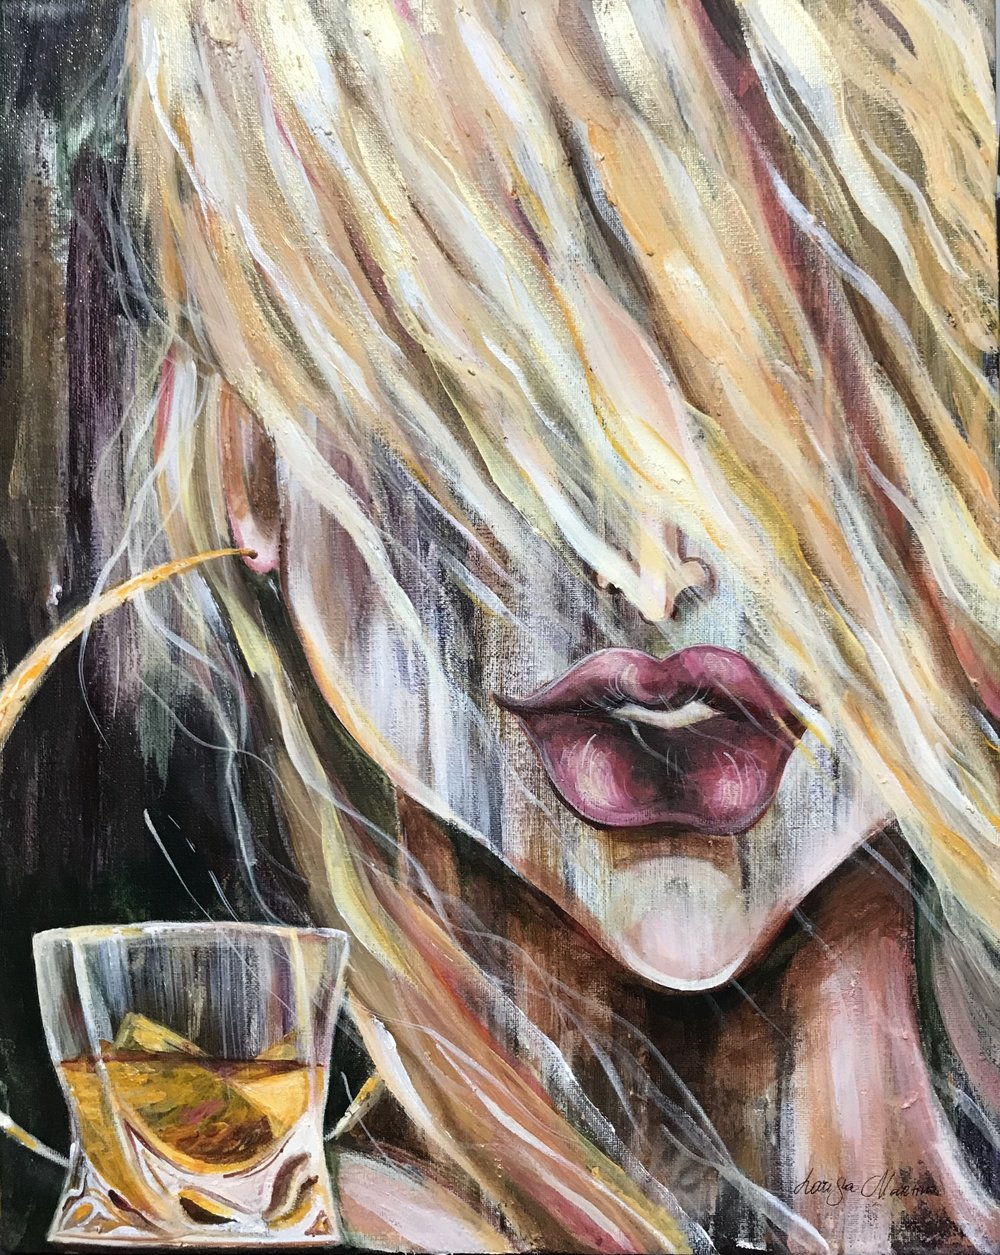 Scotch Girl- 16X20. Sold.